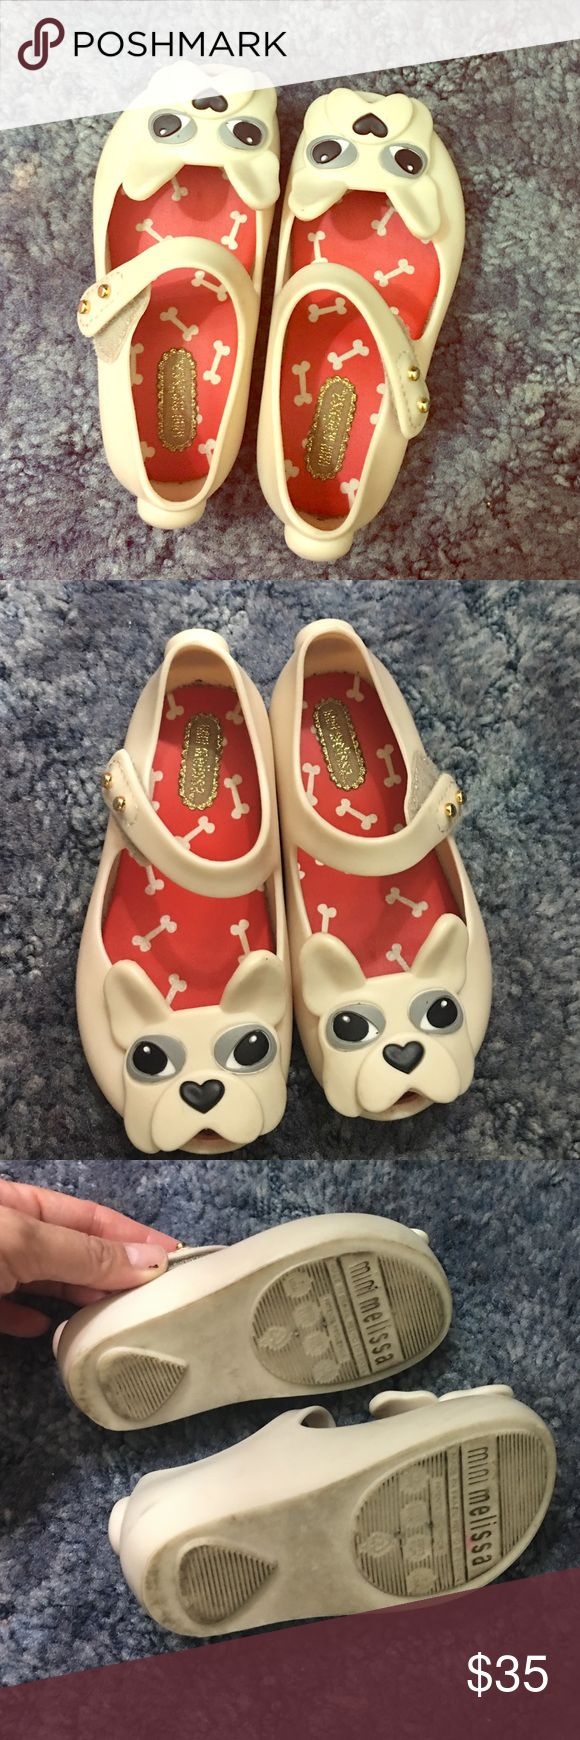 Mini Melissa for sale Mini Melissa Animal toddler shoes size 7 Mini Melissa Shoes Baby & Walker